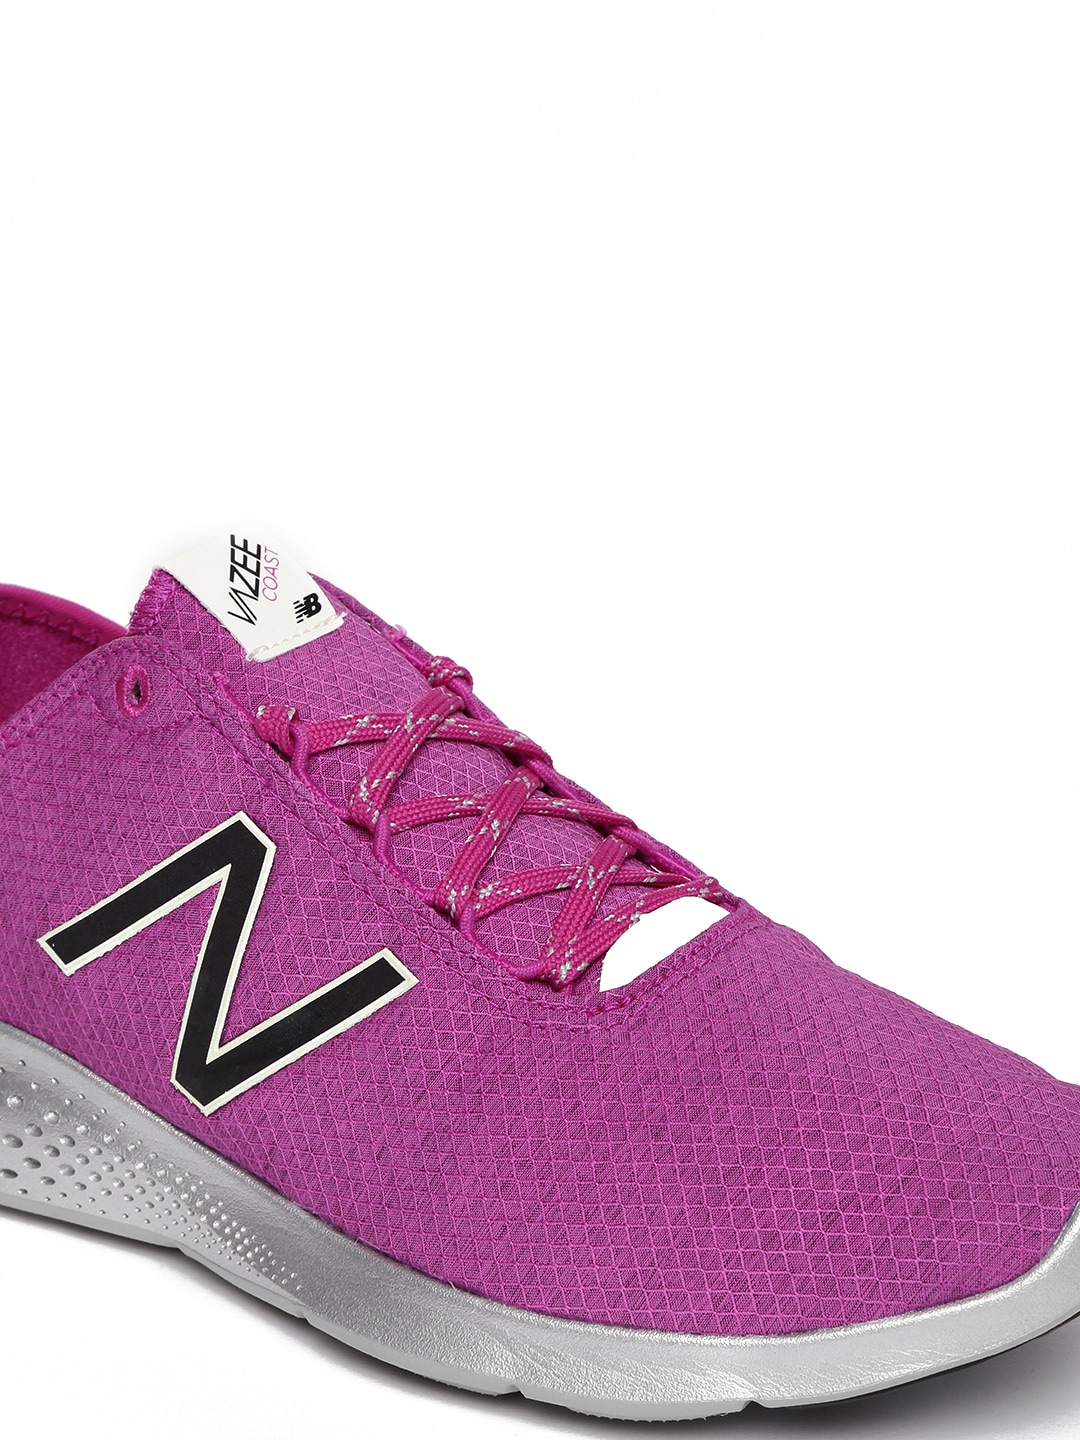 new balance 1500 v1 womens shoes pink/yellow new balance toddler boys wide